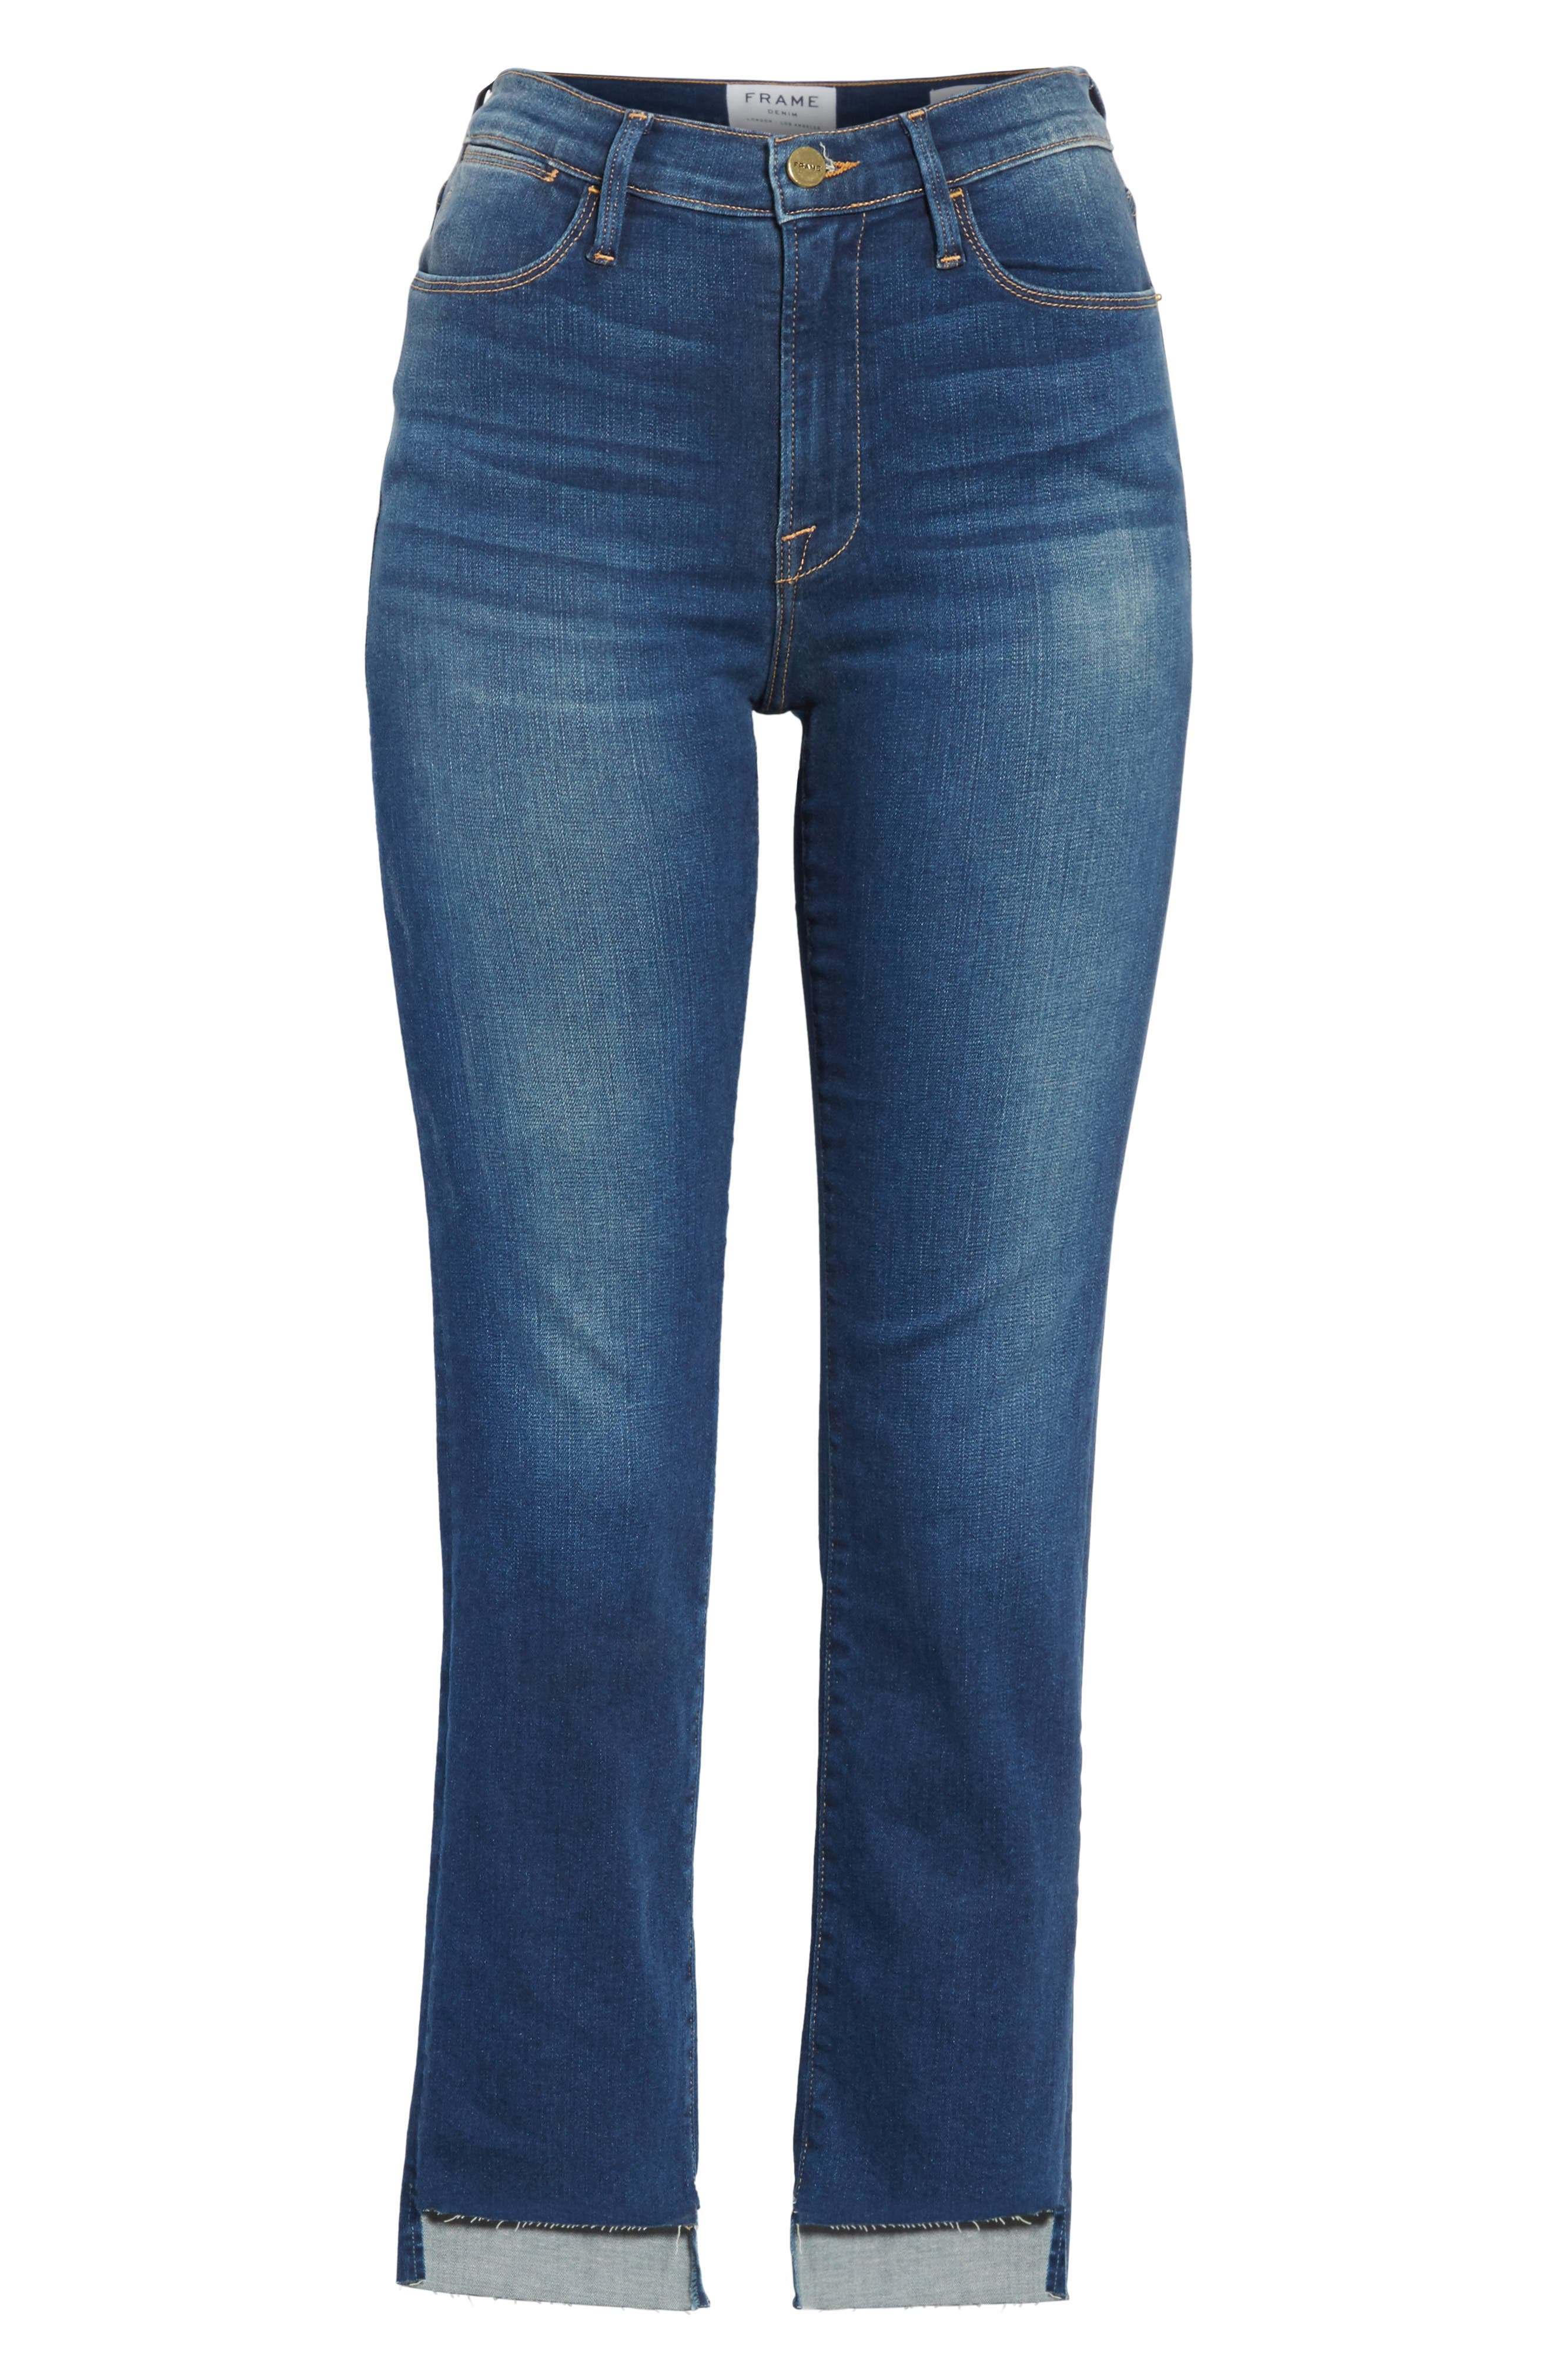 Le High Straight High Waist Raw Stagger Jeans,                             Alternate thumbnail 7, color,                             Murrayfield